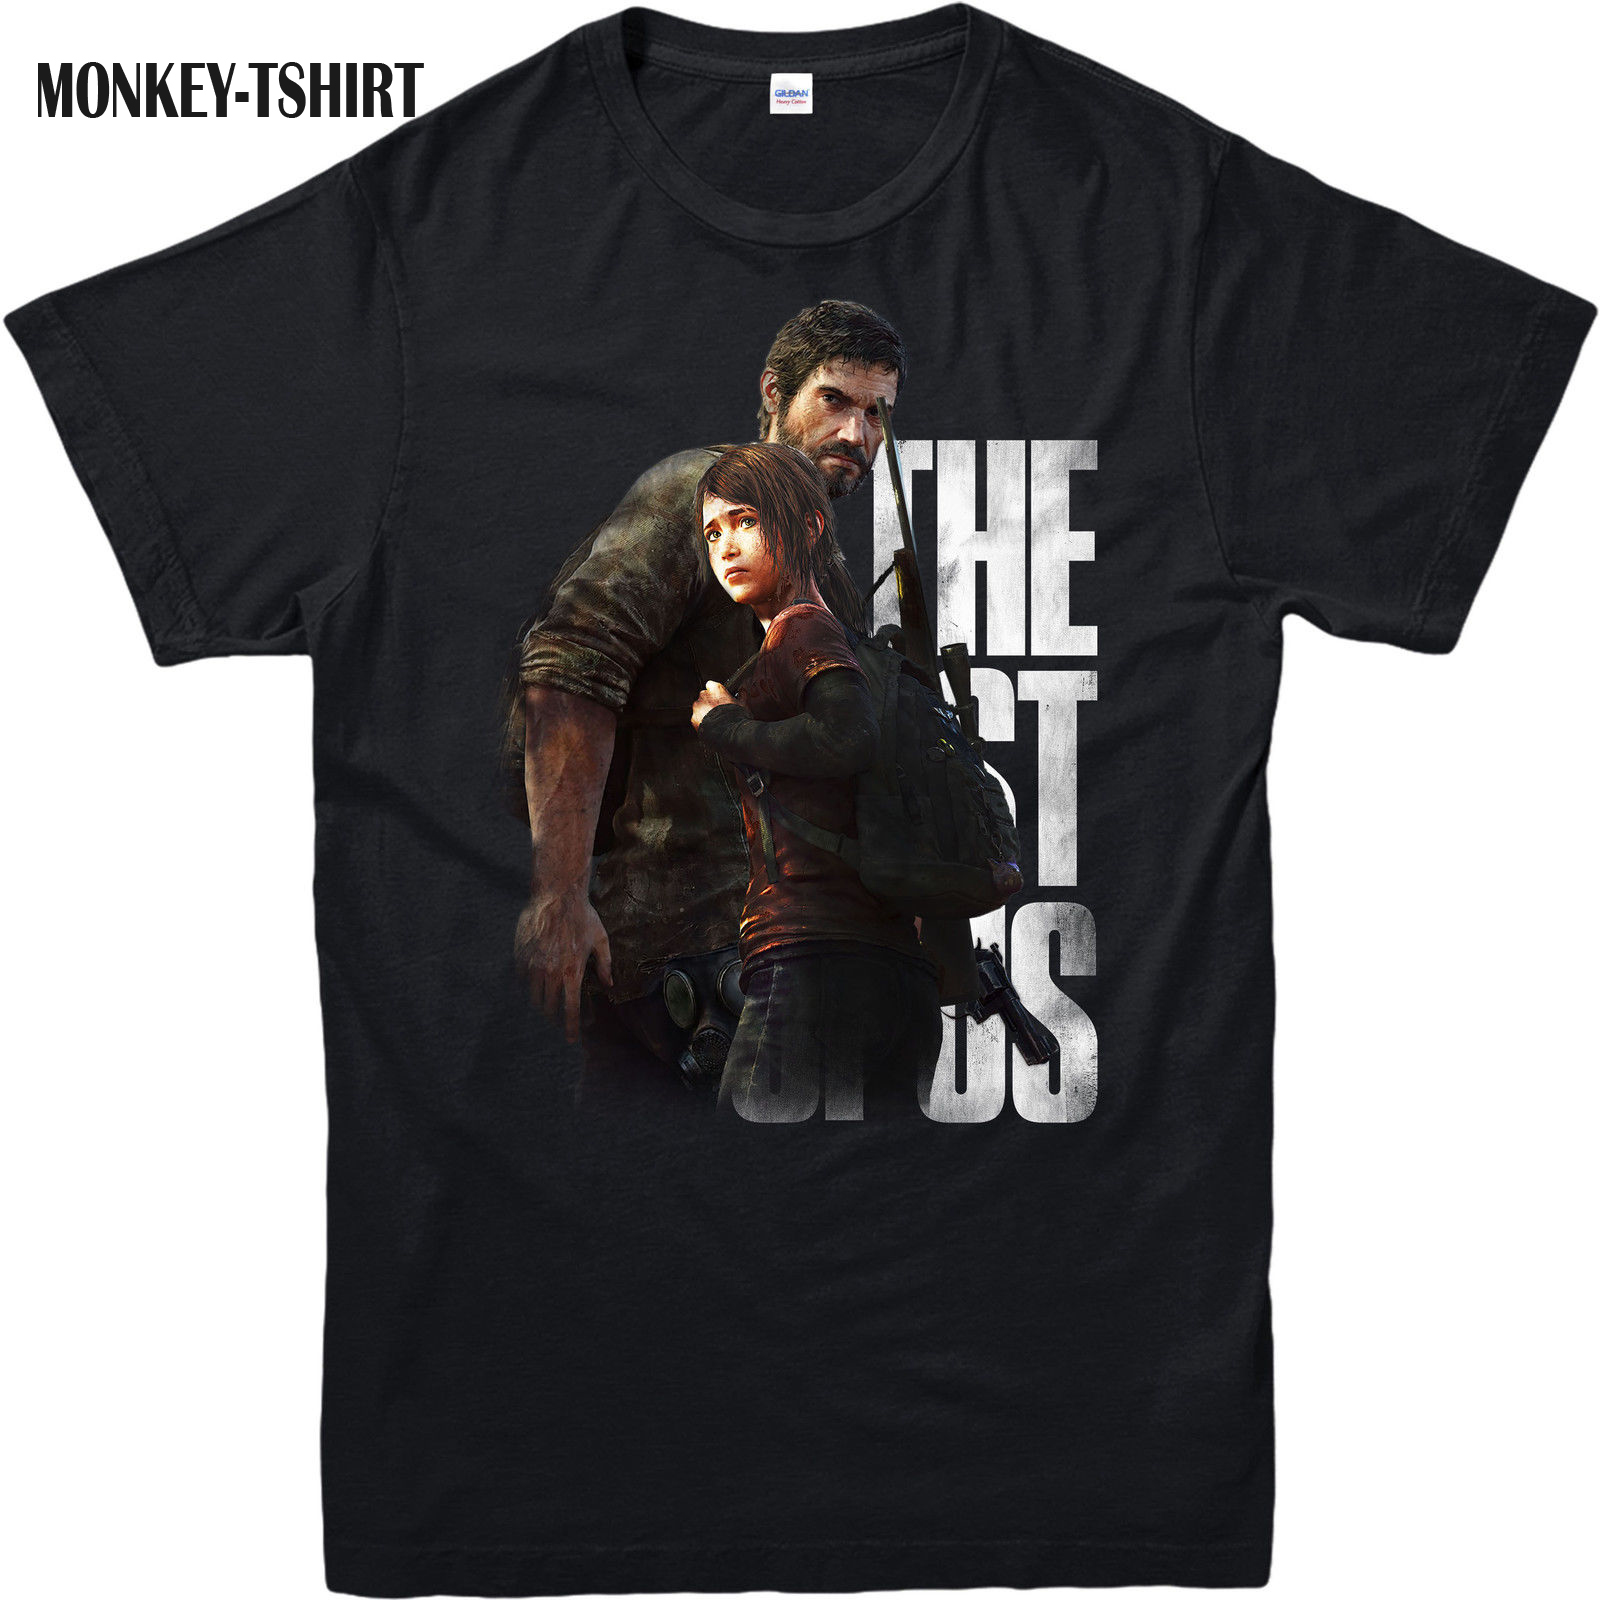 LEQEMAO The Last of us T-Shirt,Adventure Survival Horror Game,Adult and kids Sizes 100% Cotton Short Sleeves Tee Shirts